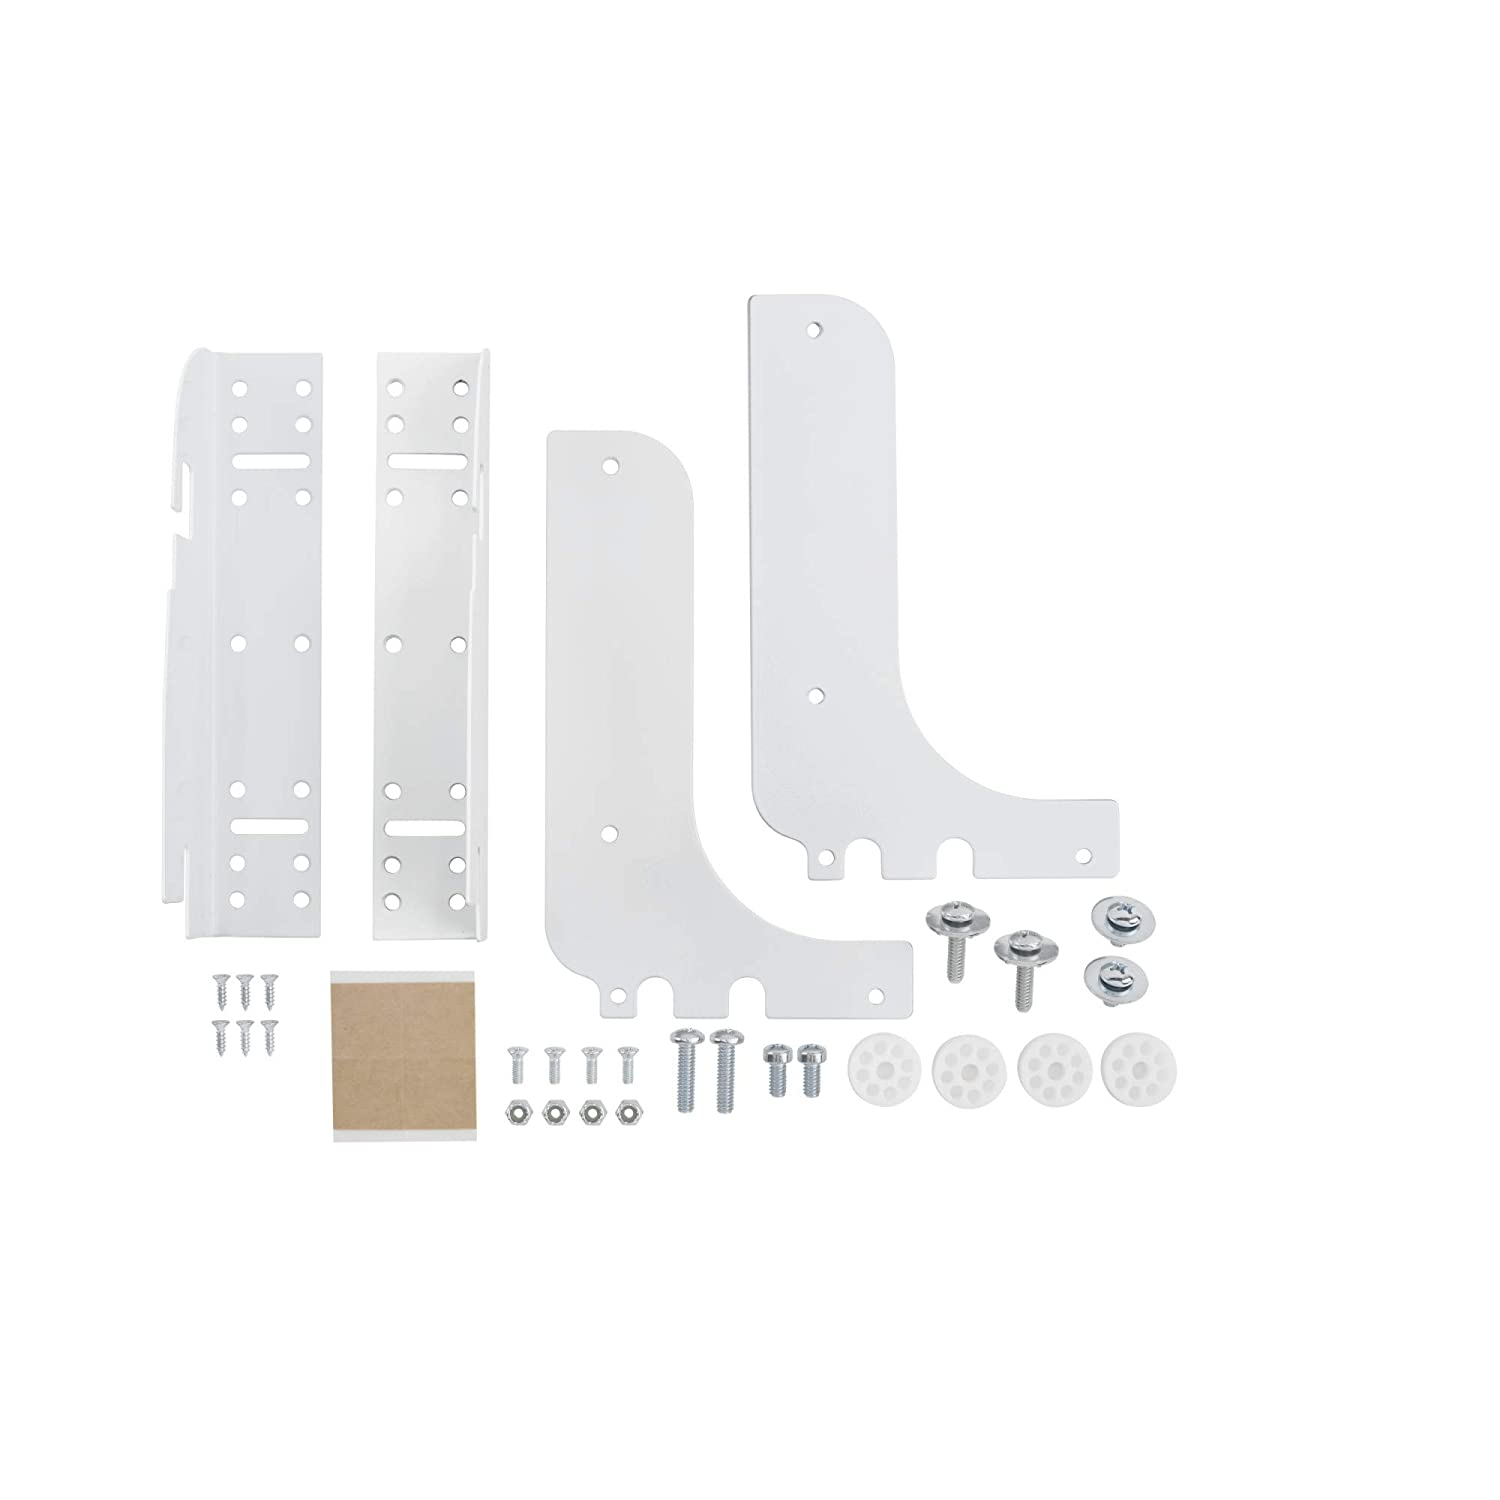 Rev-A-Shelf RV DM KIT Door Mounting Kit for RV Series Kitchen Garbage Waste Containers, White